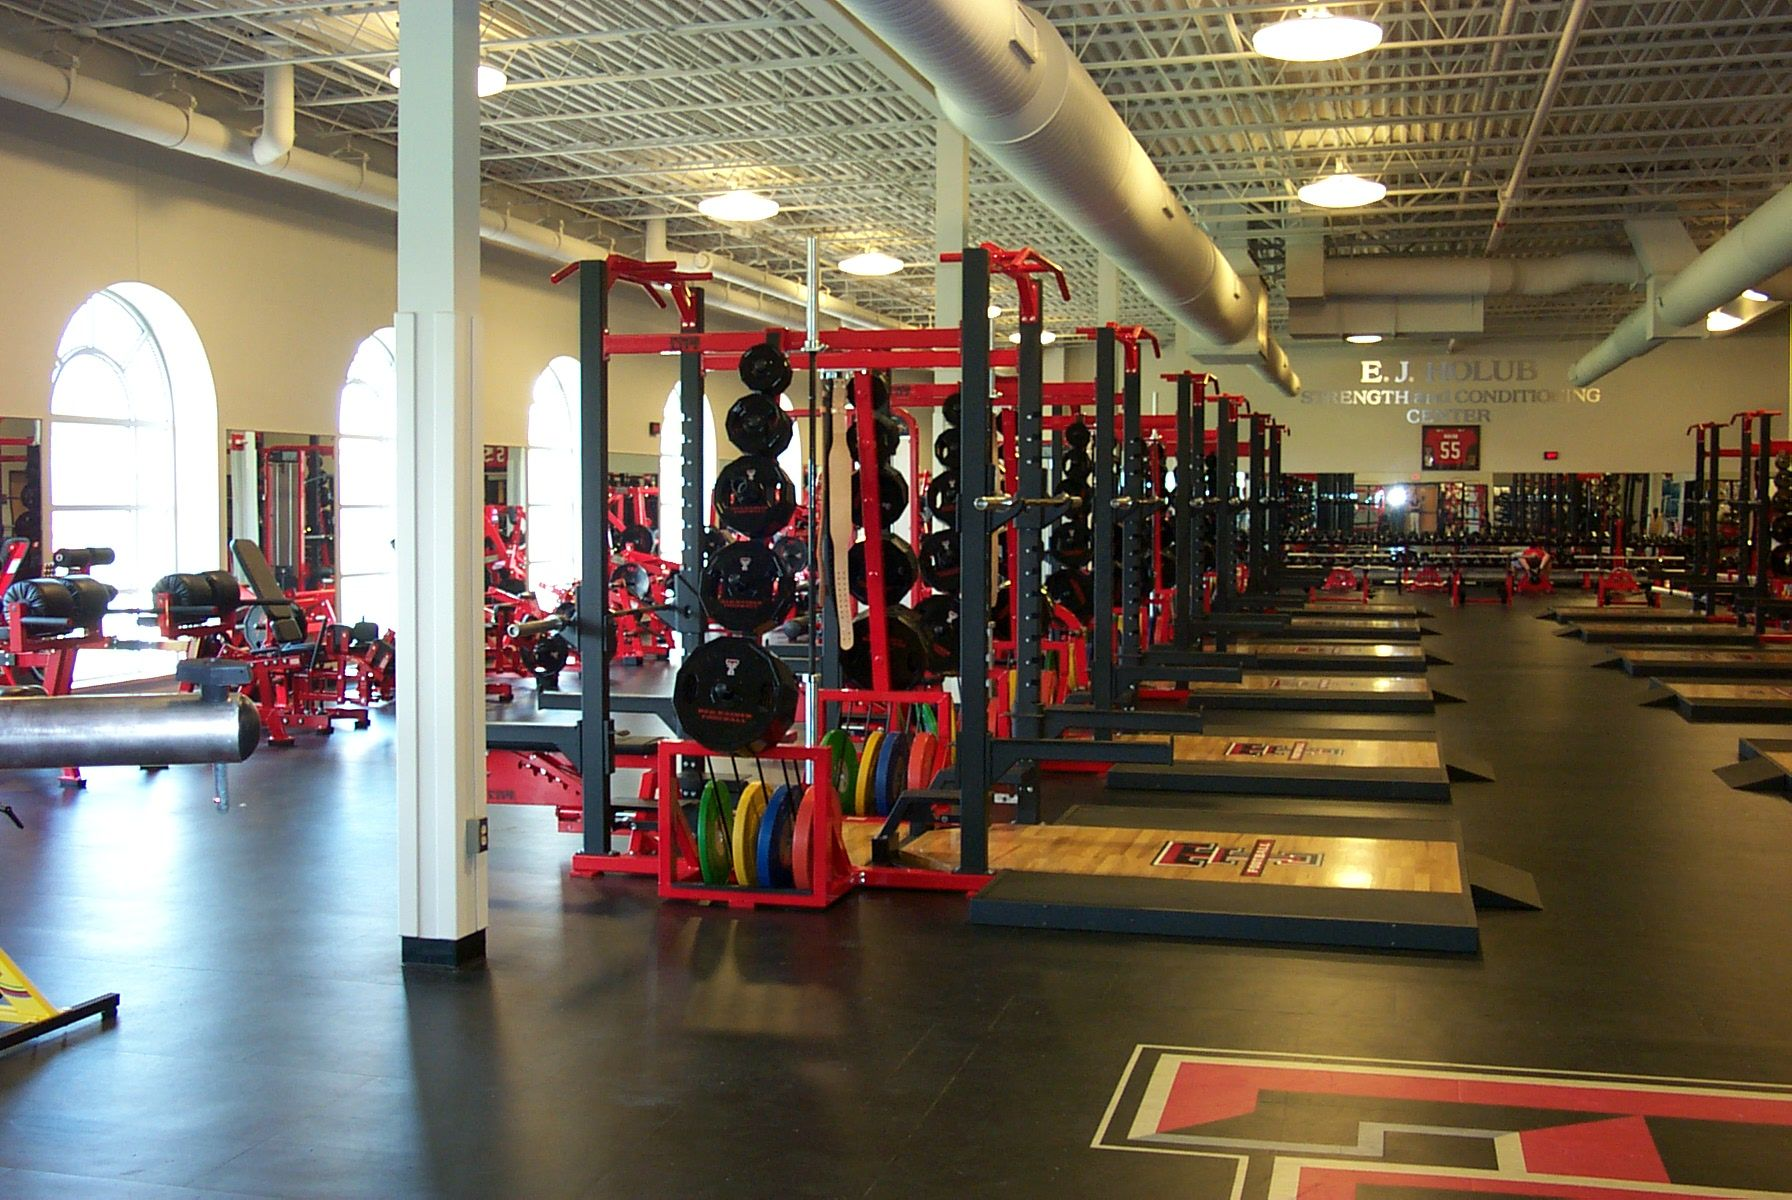 Texas Tech University Red Raiders (With images) Texas